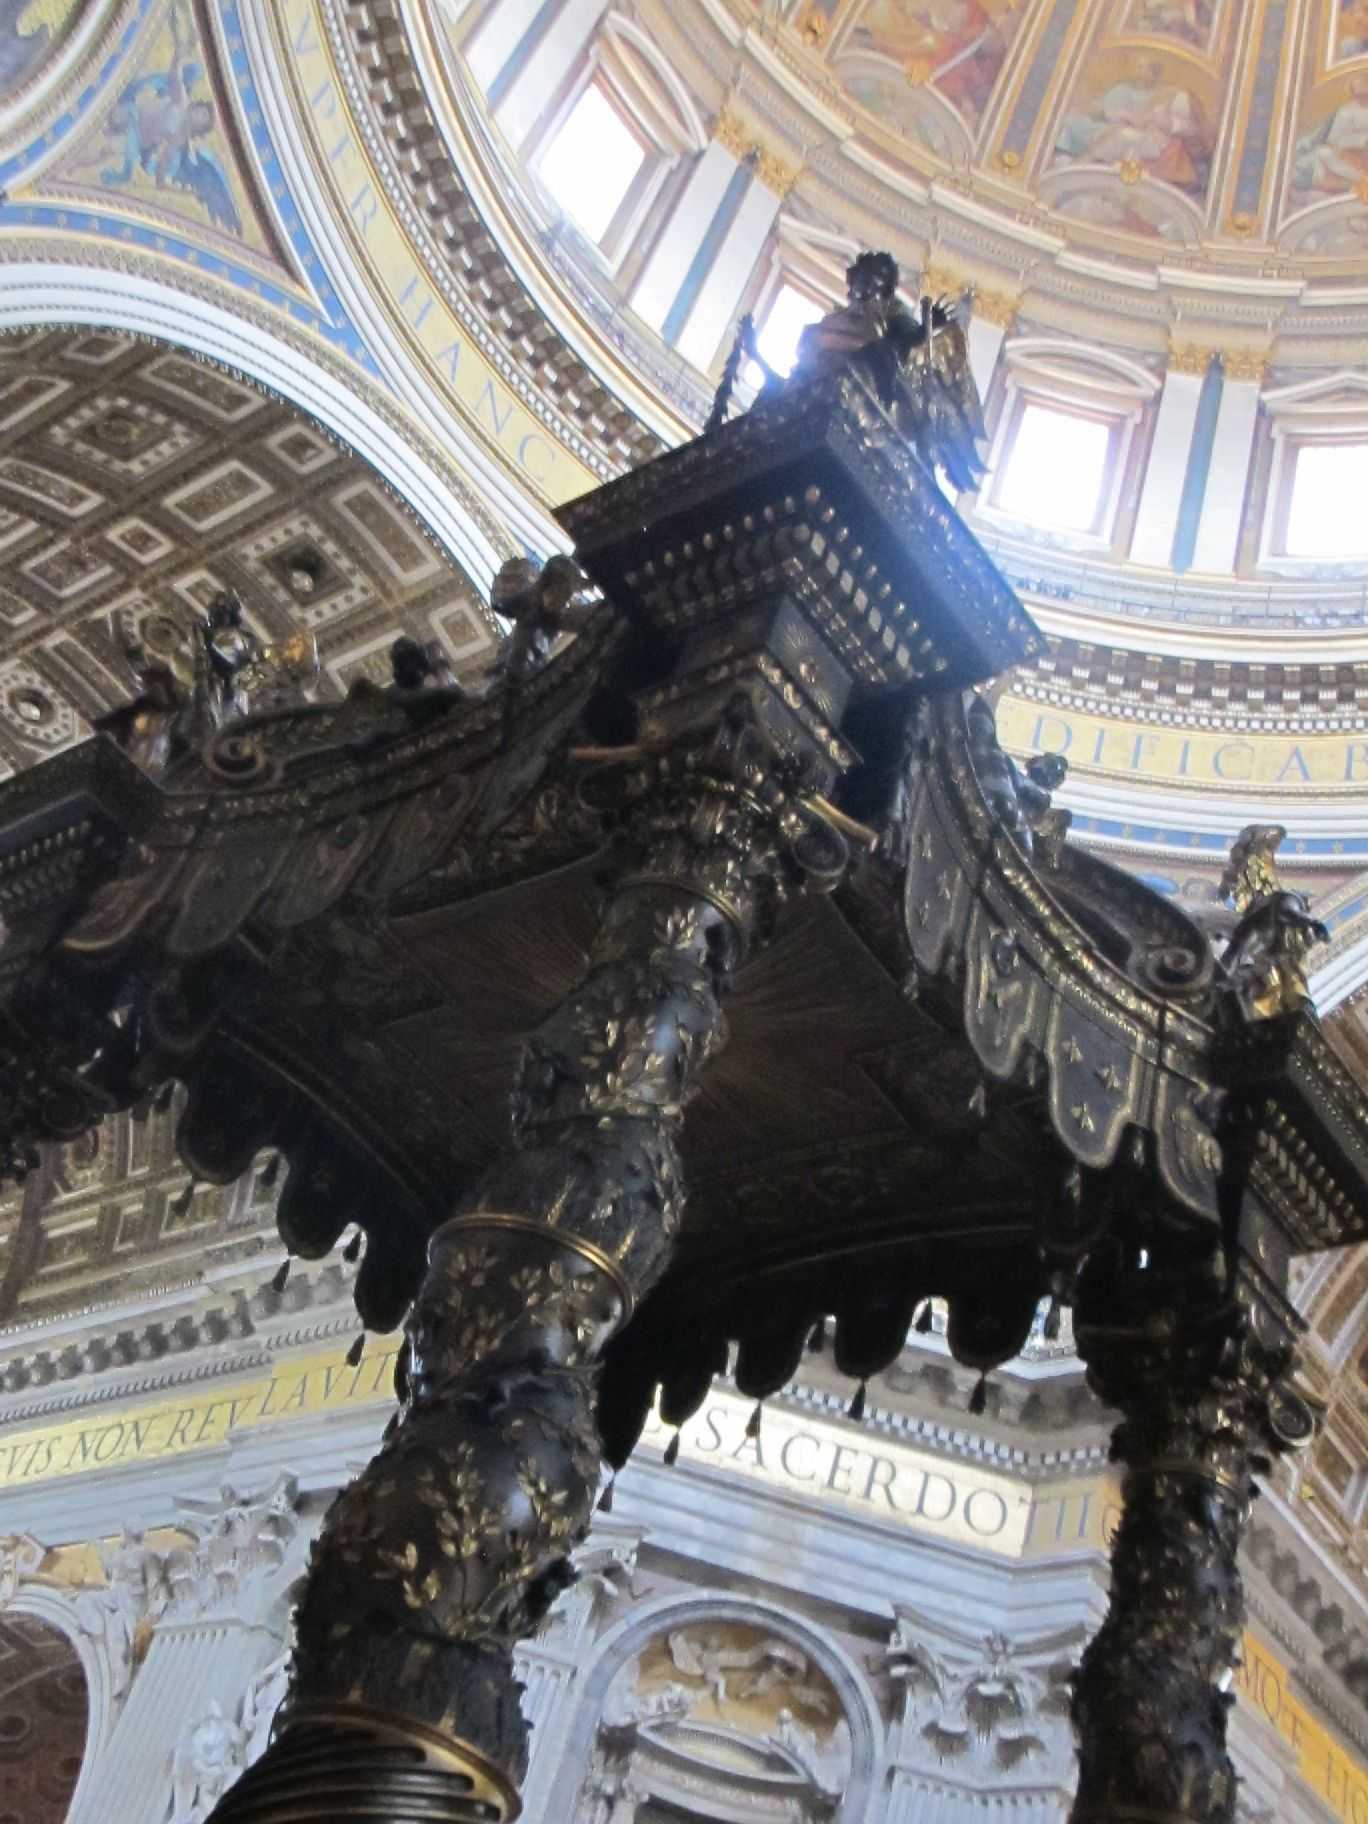 Here it is, a slice of St. Peter's dome. Photo by Kim Kash